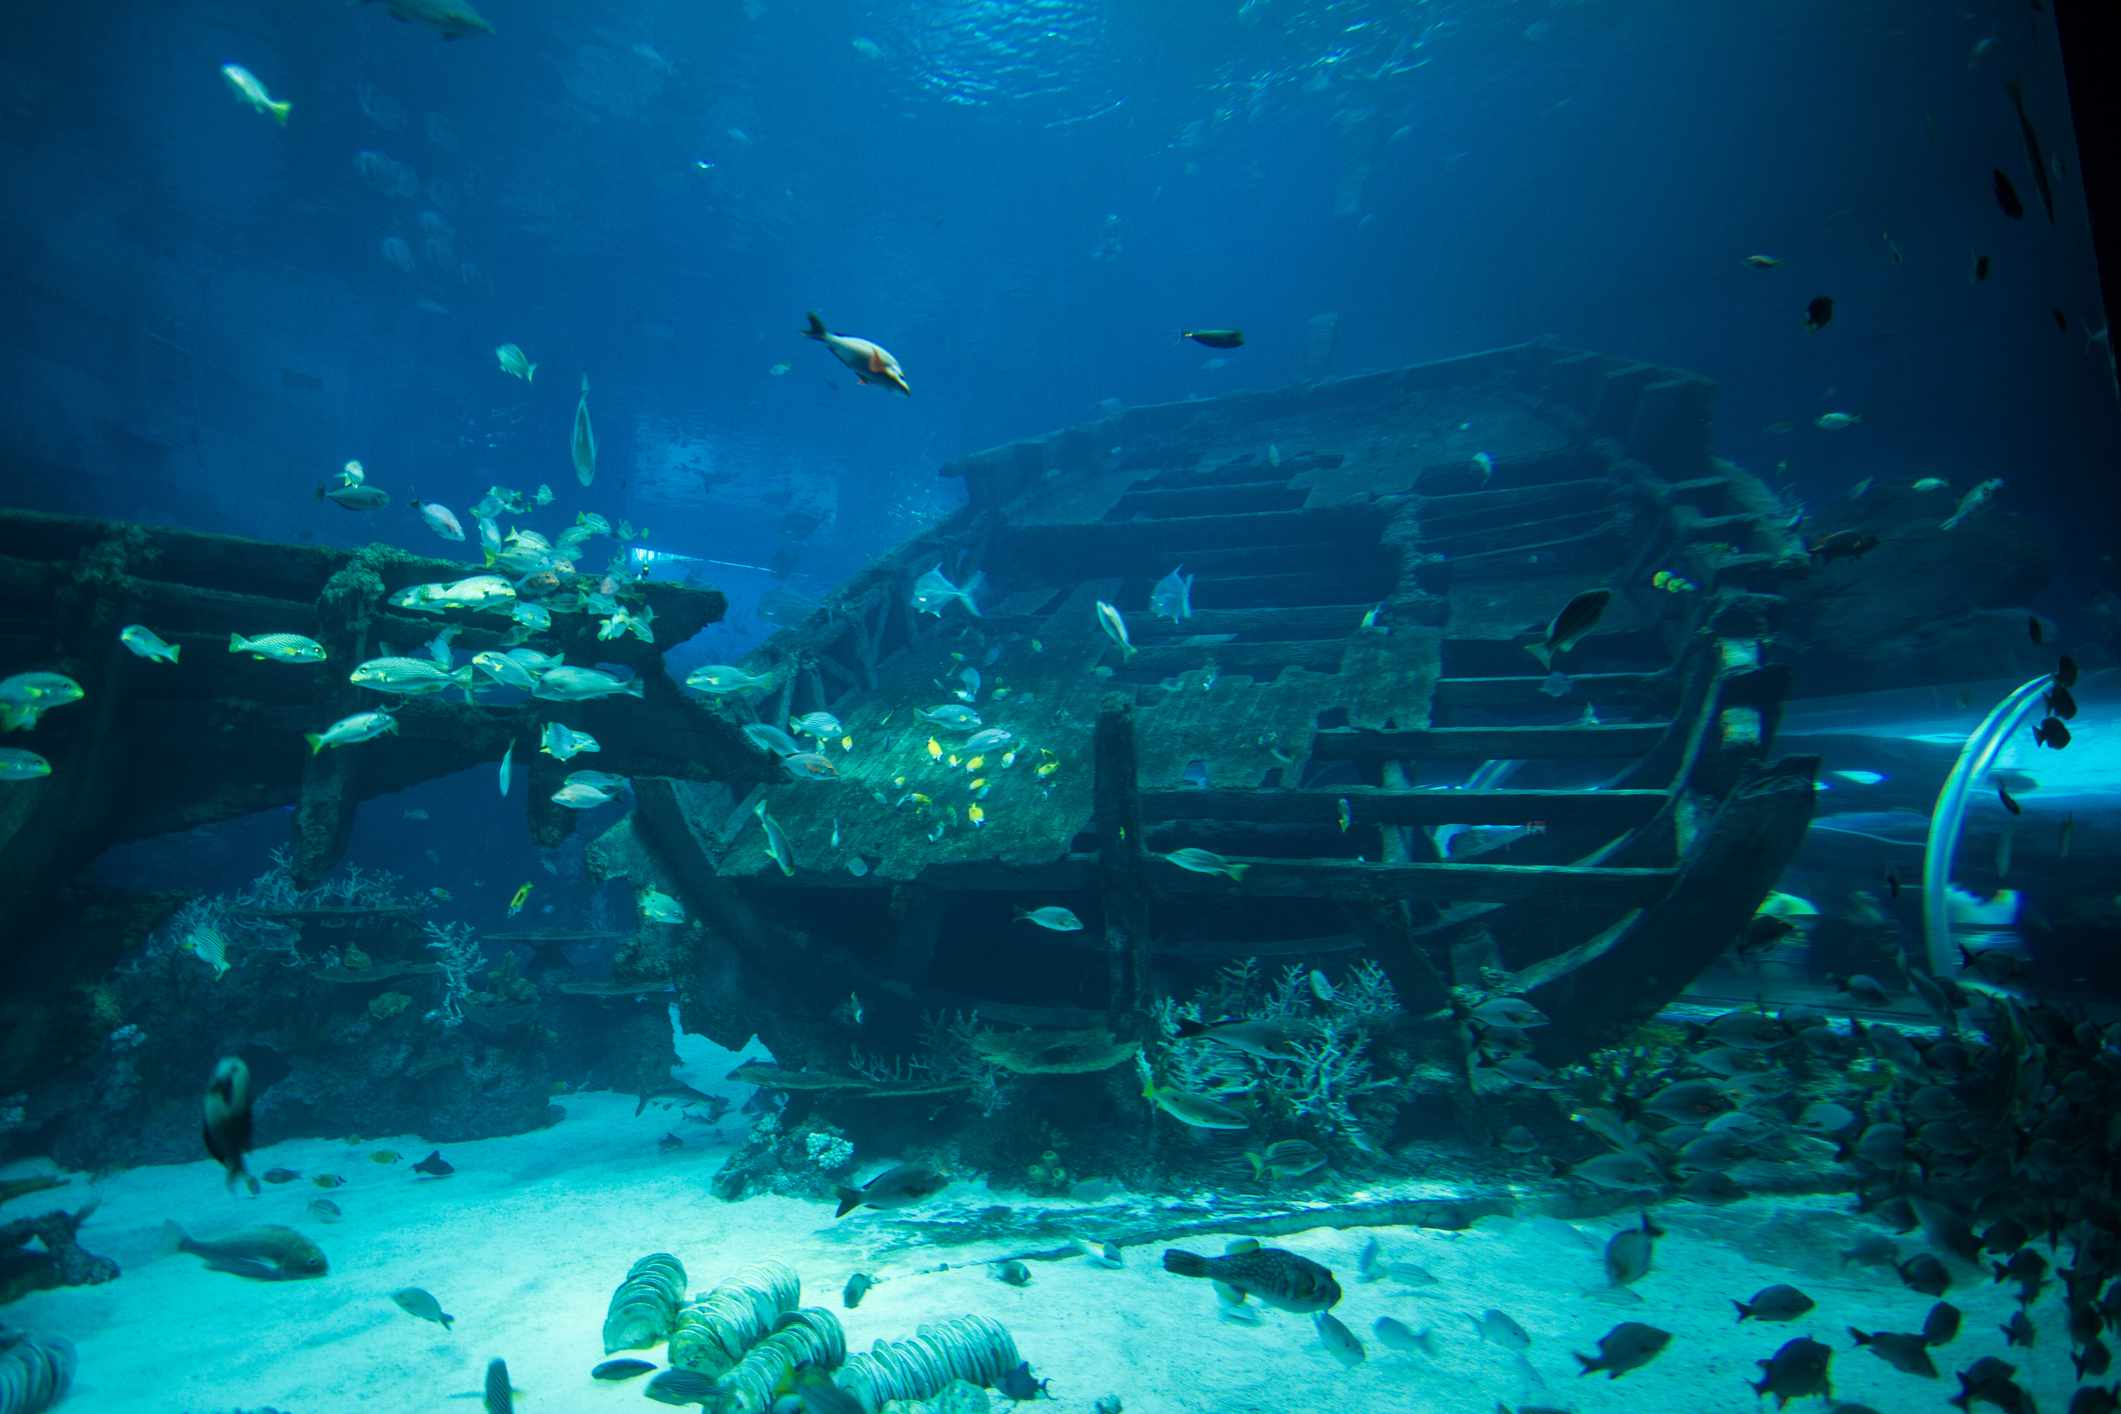 Underwater artificial reef filled with fish set on white sand at S.E.A. Aquarium in Singapore